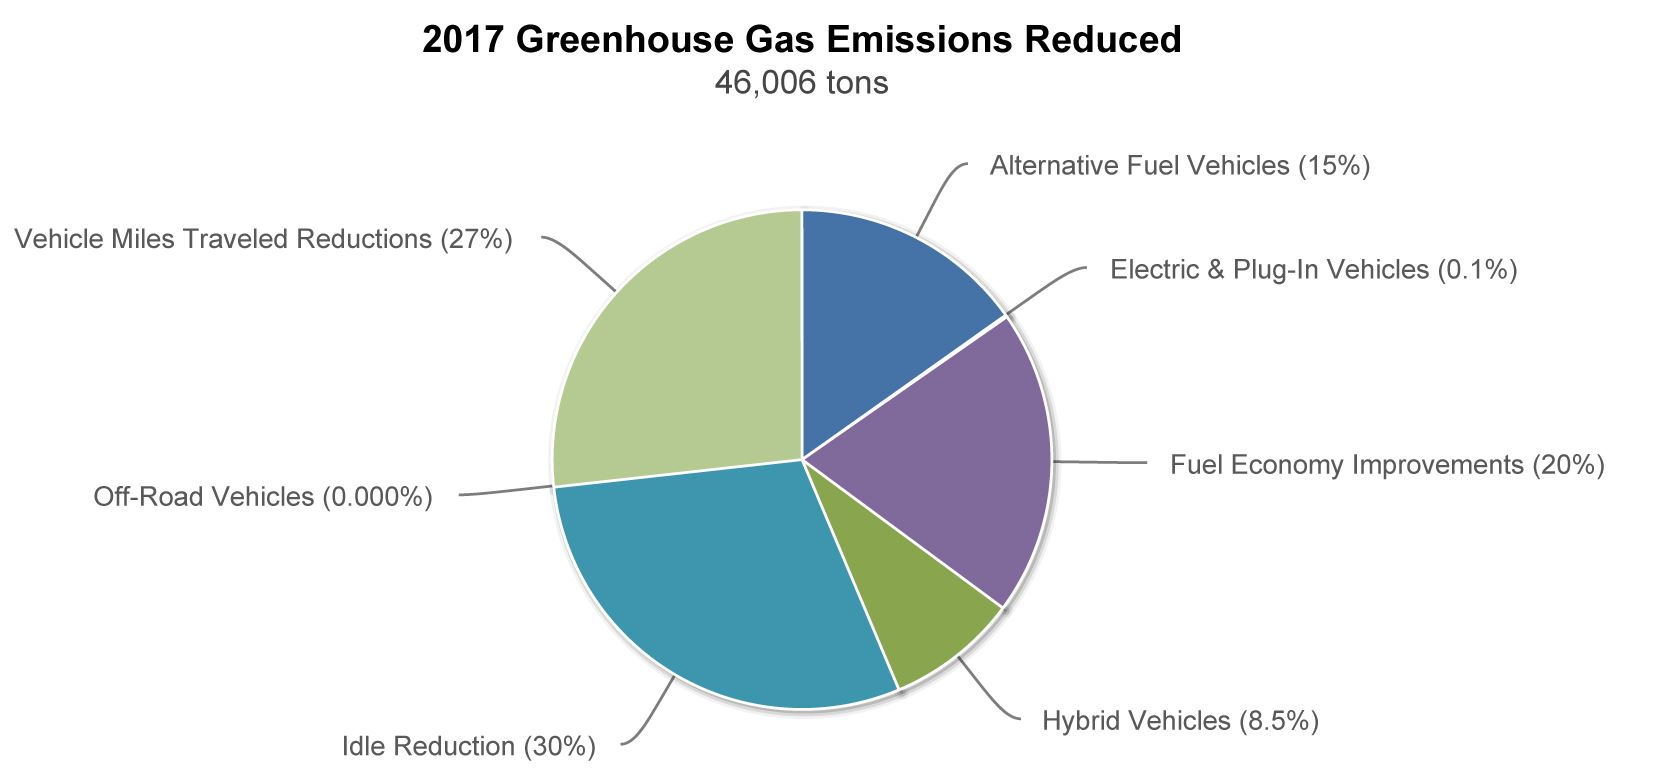 Greenhouse Gases Reduced in 2017